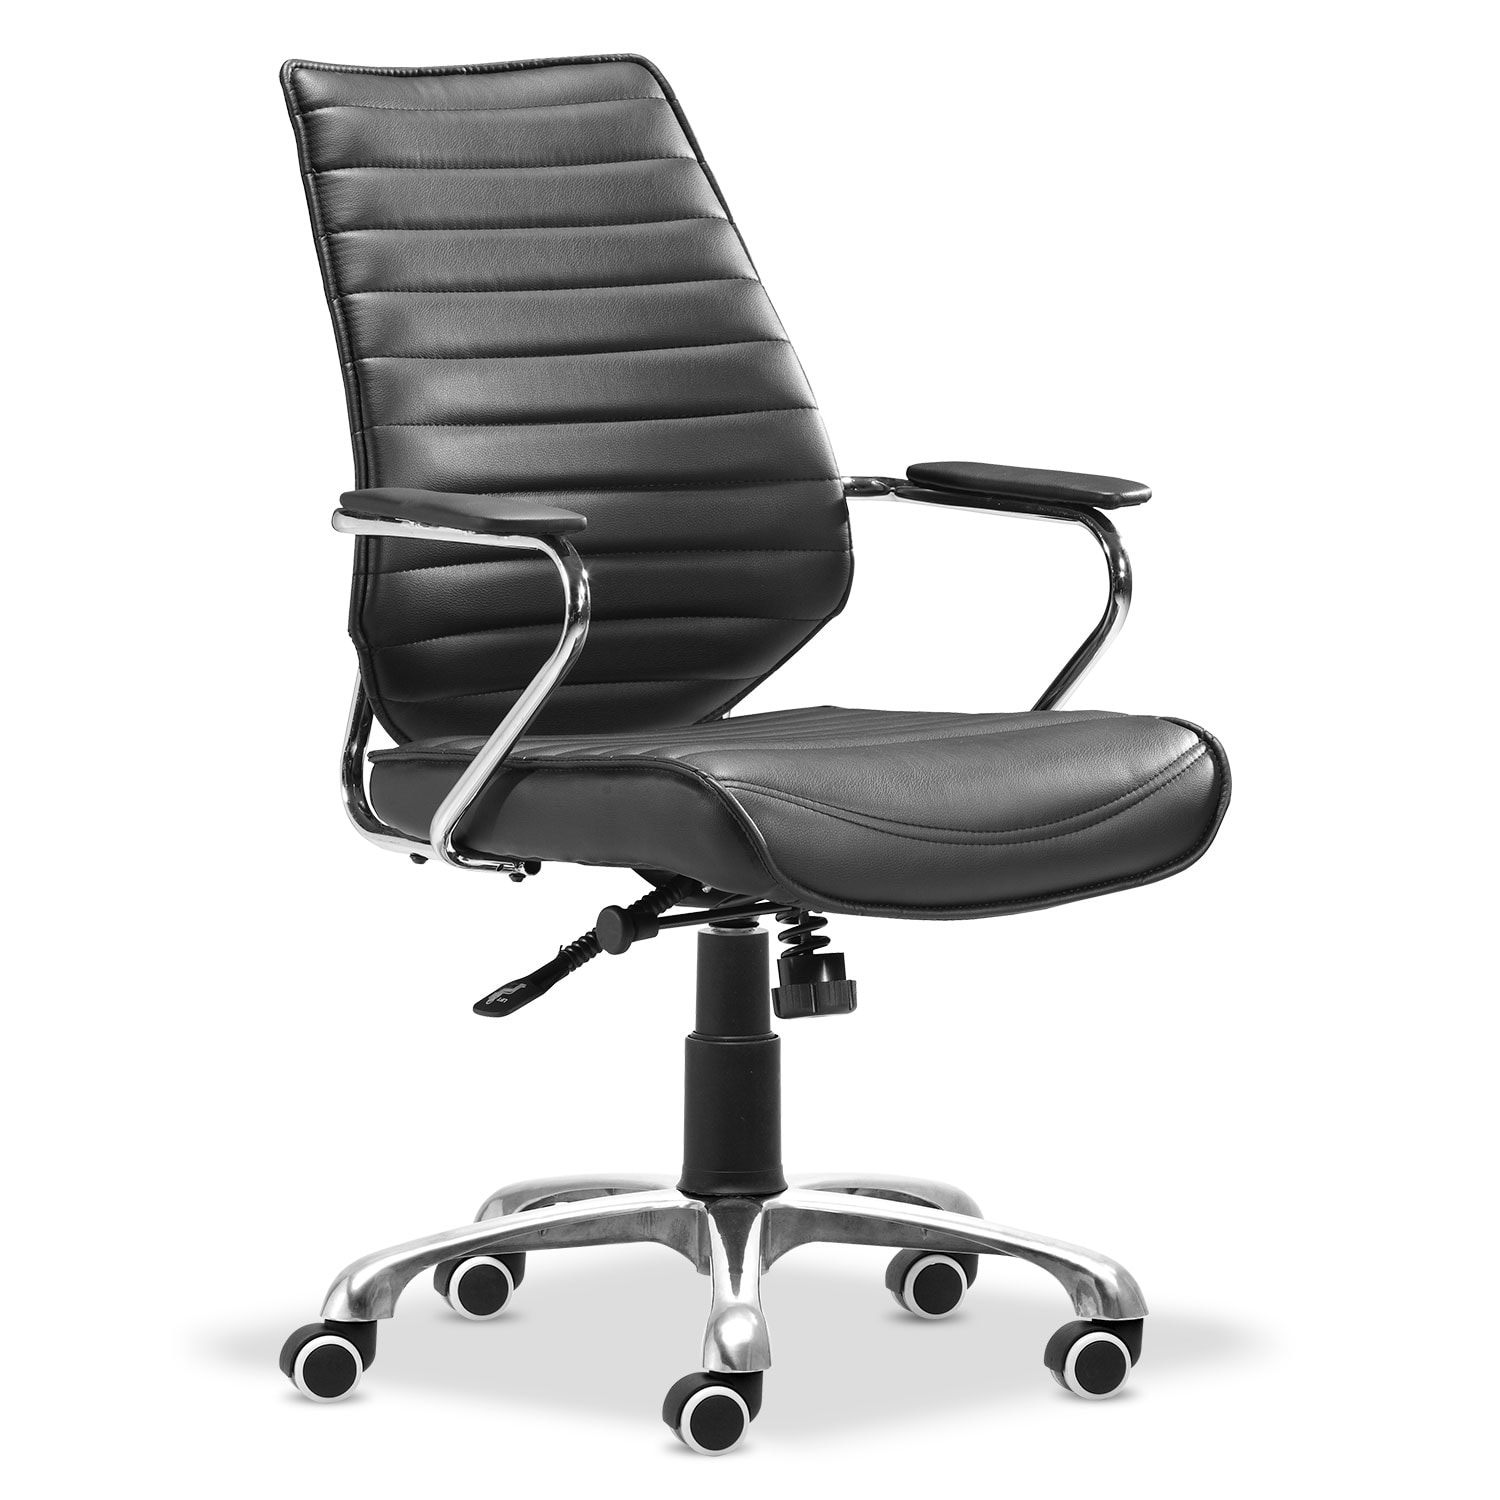 Home Office Furniture - Graham Office Arm Chair